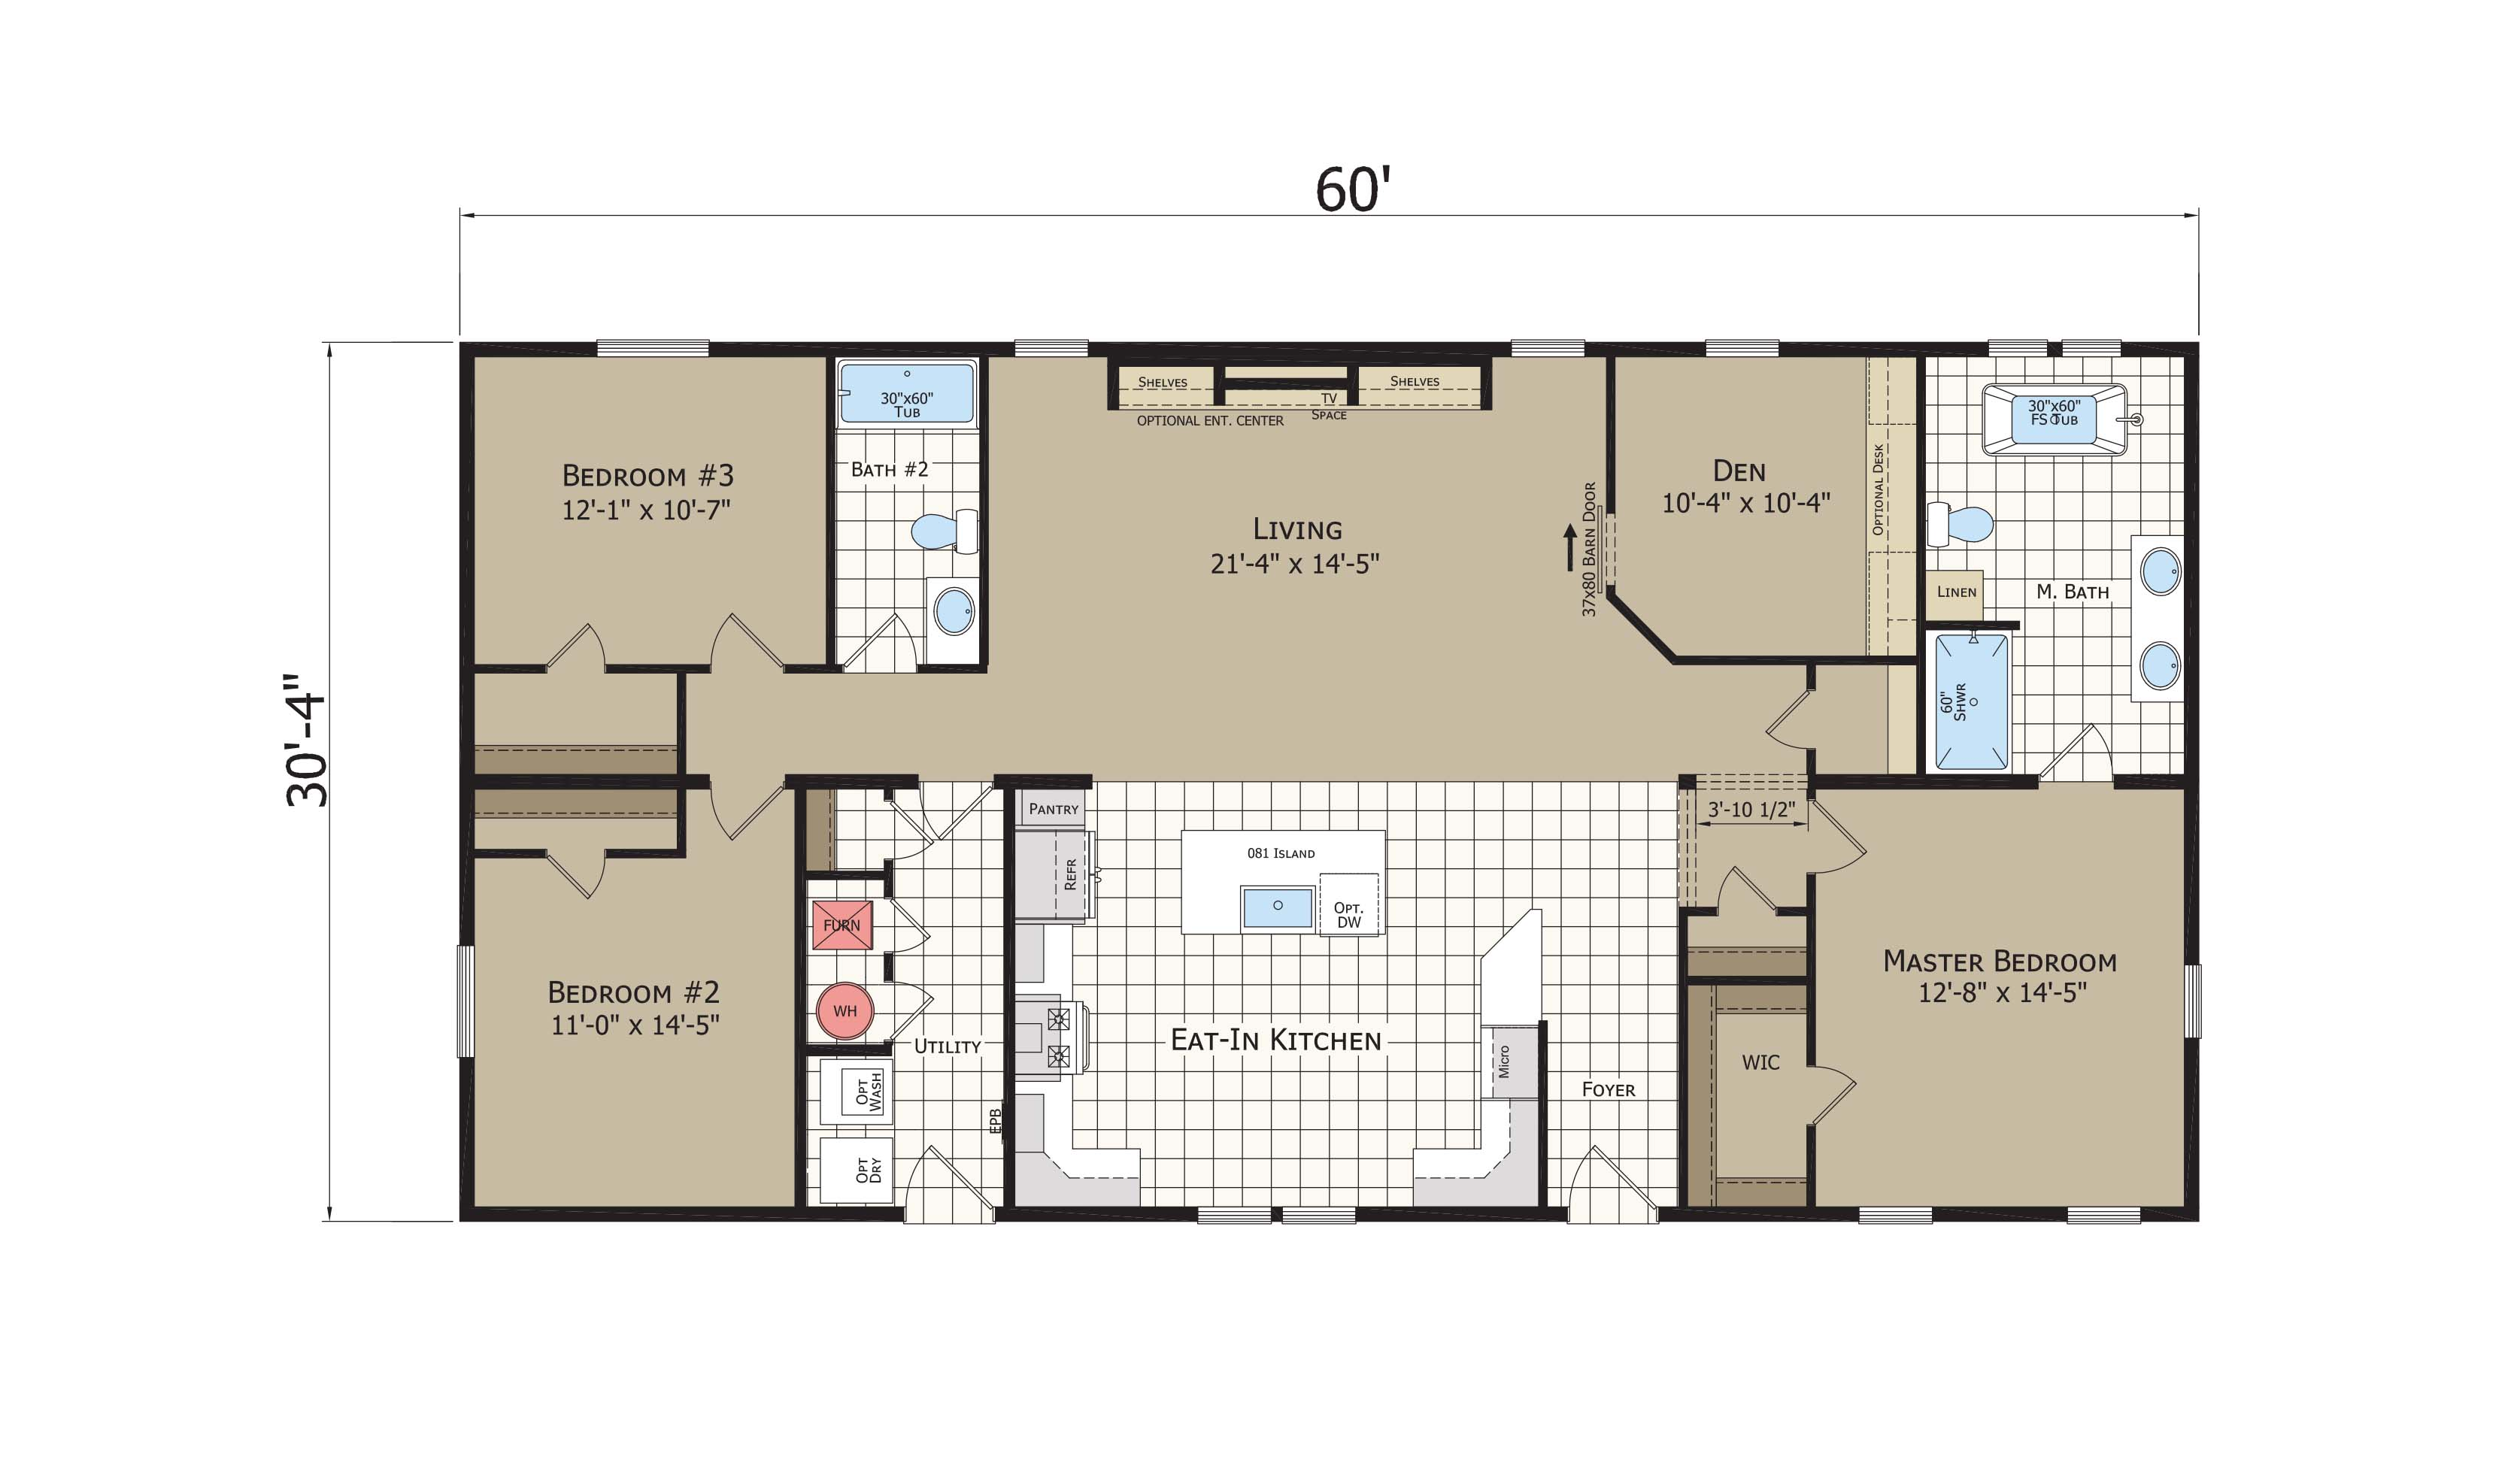 floorplan image for unit 349